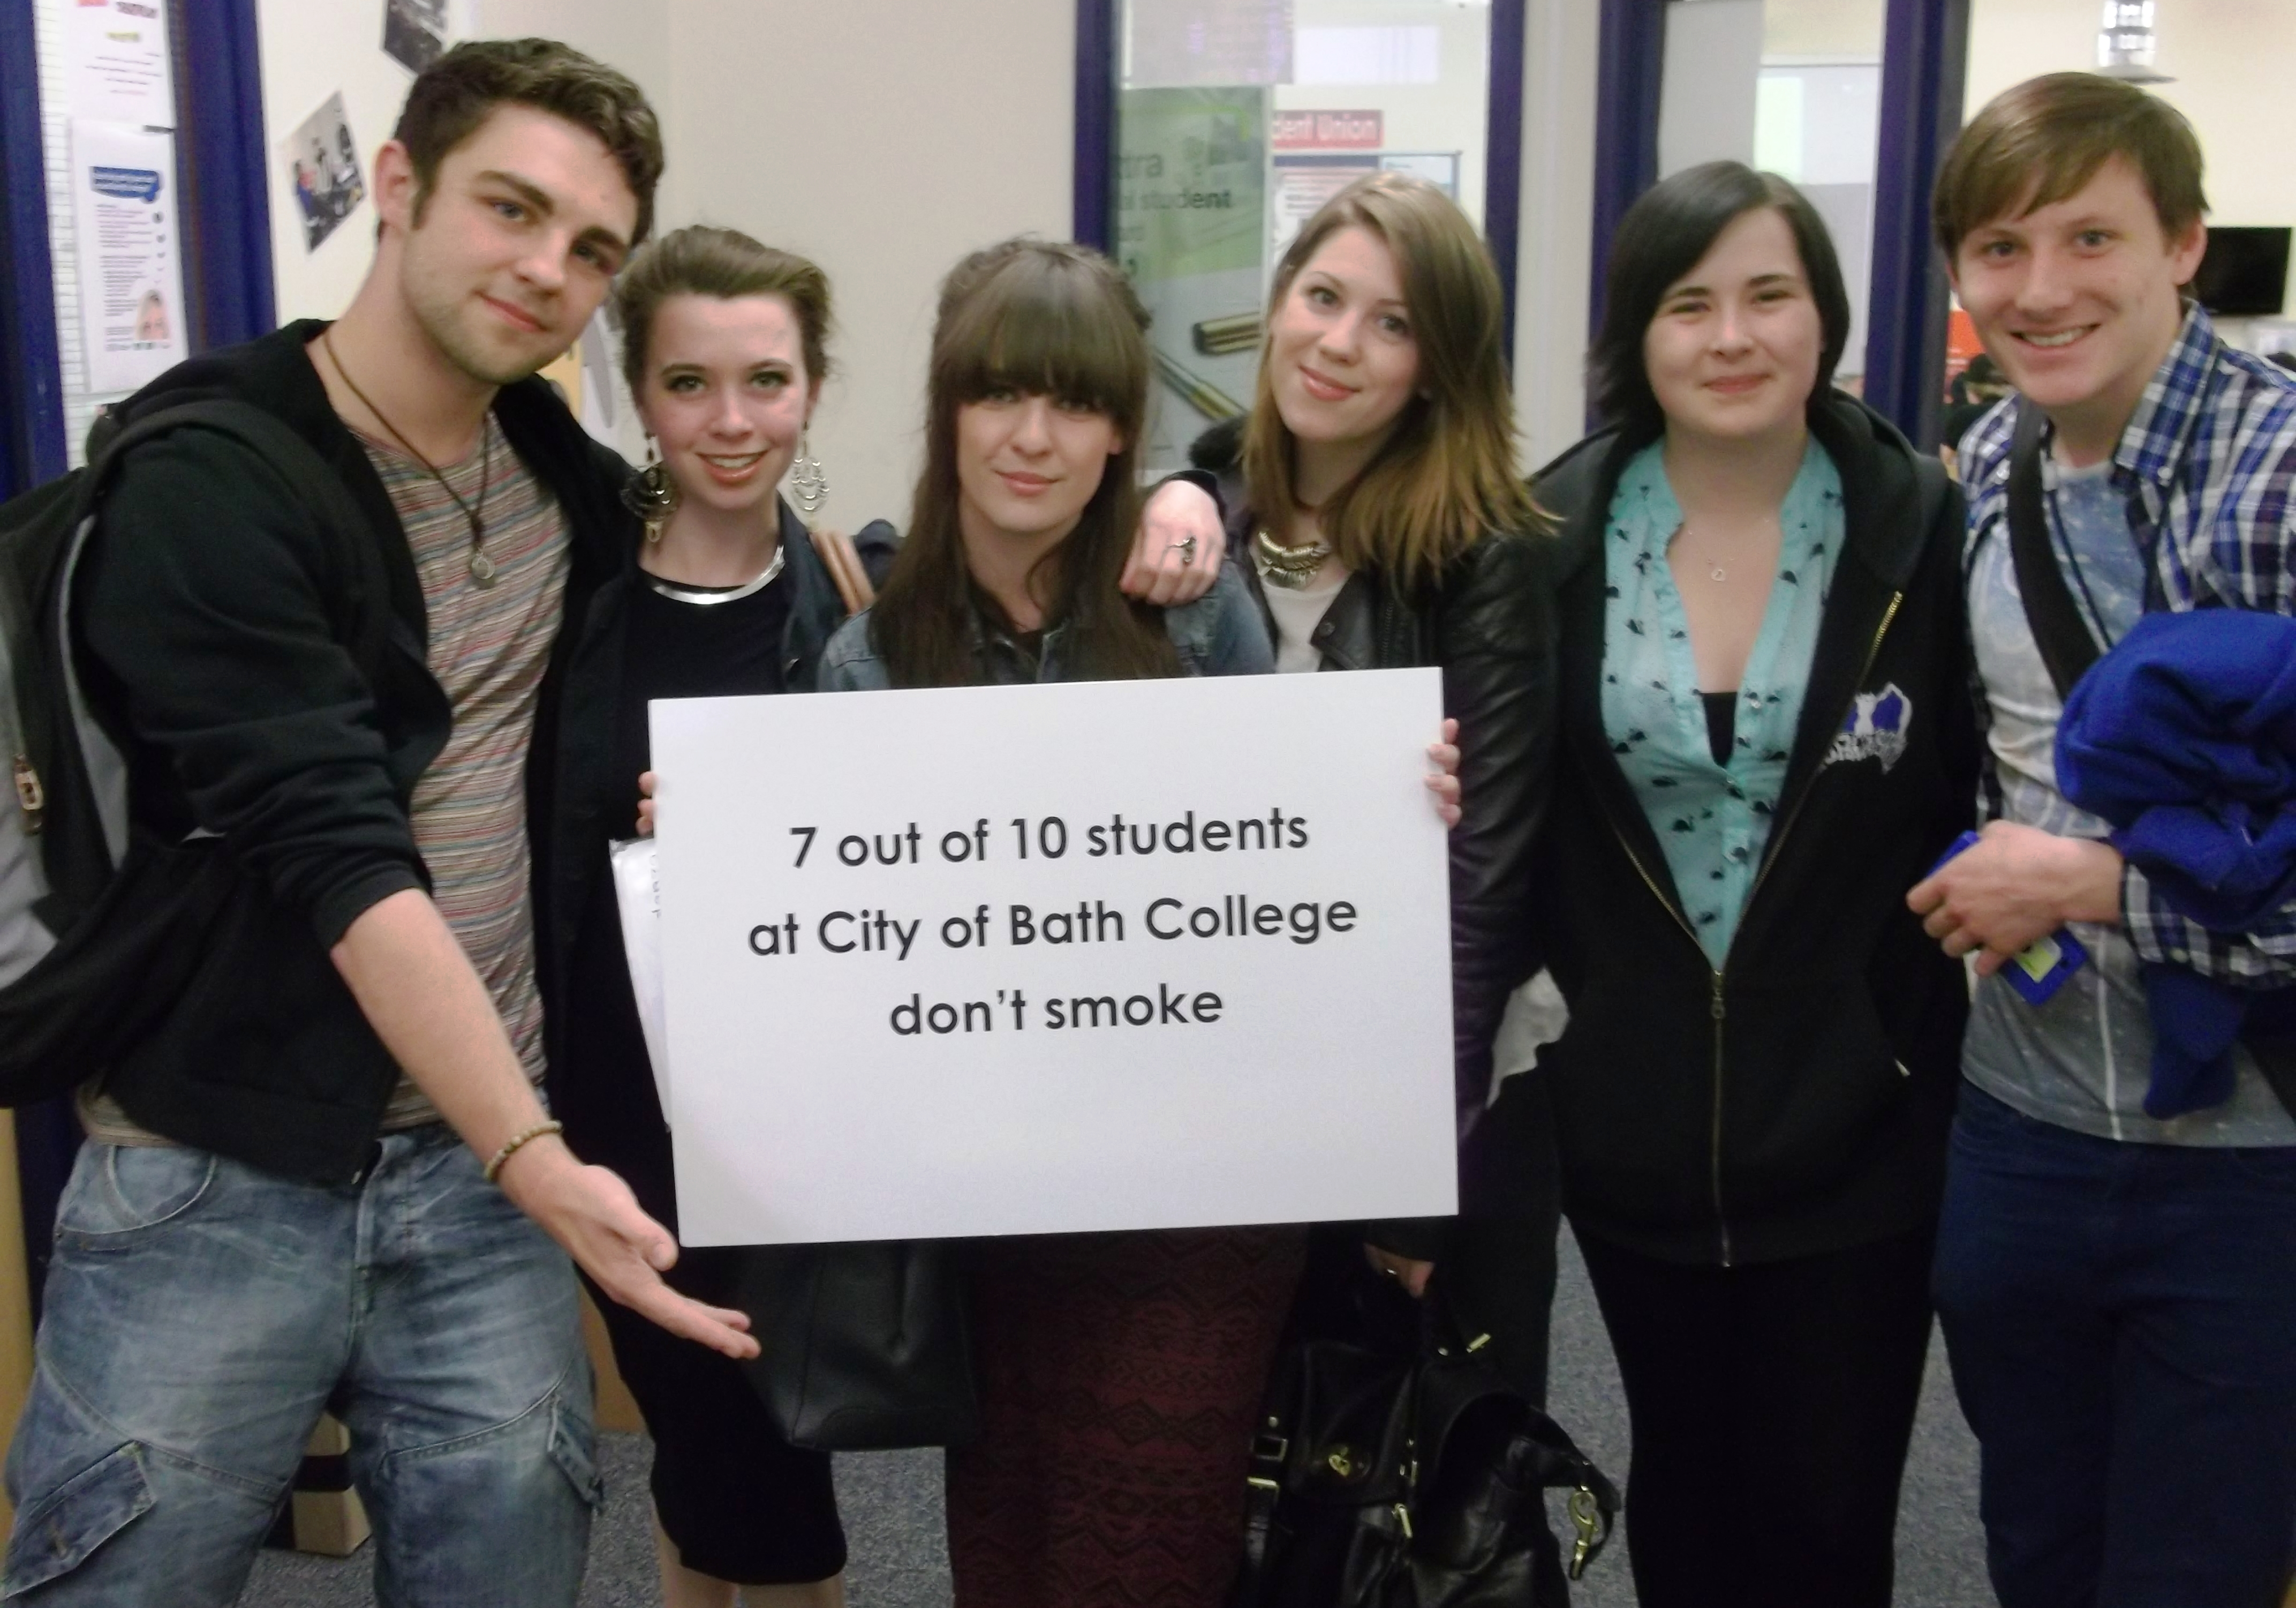 smoking on college campus Why do students light up for the first time on campus the observational pros and cons.